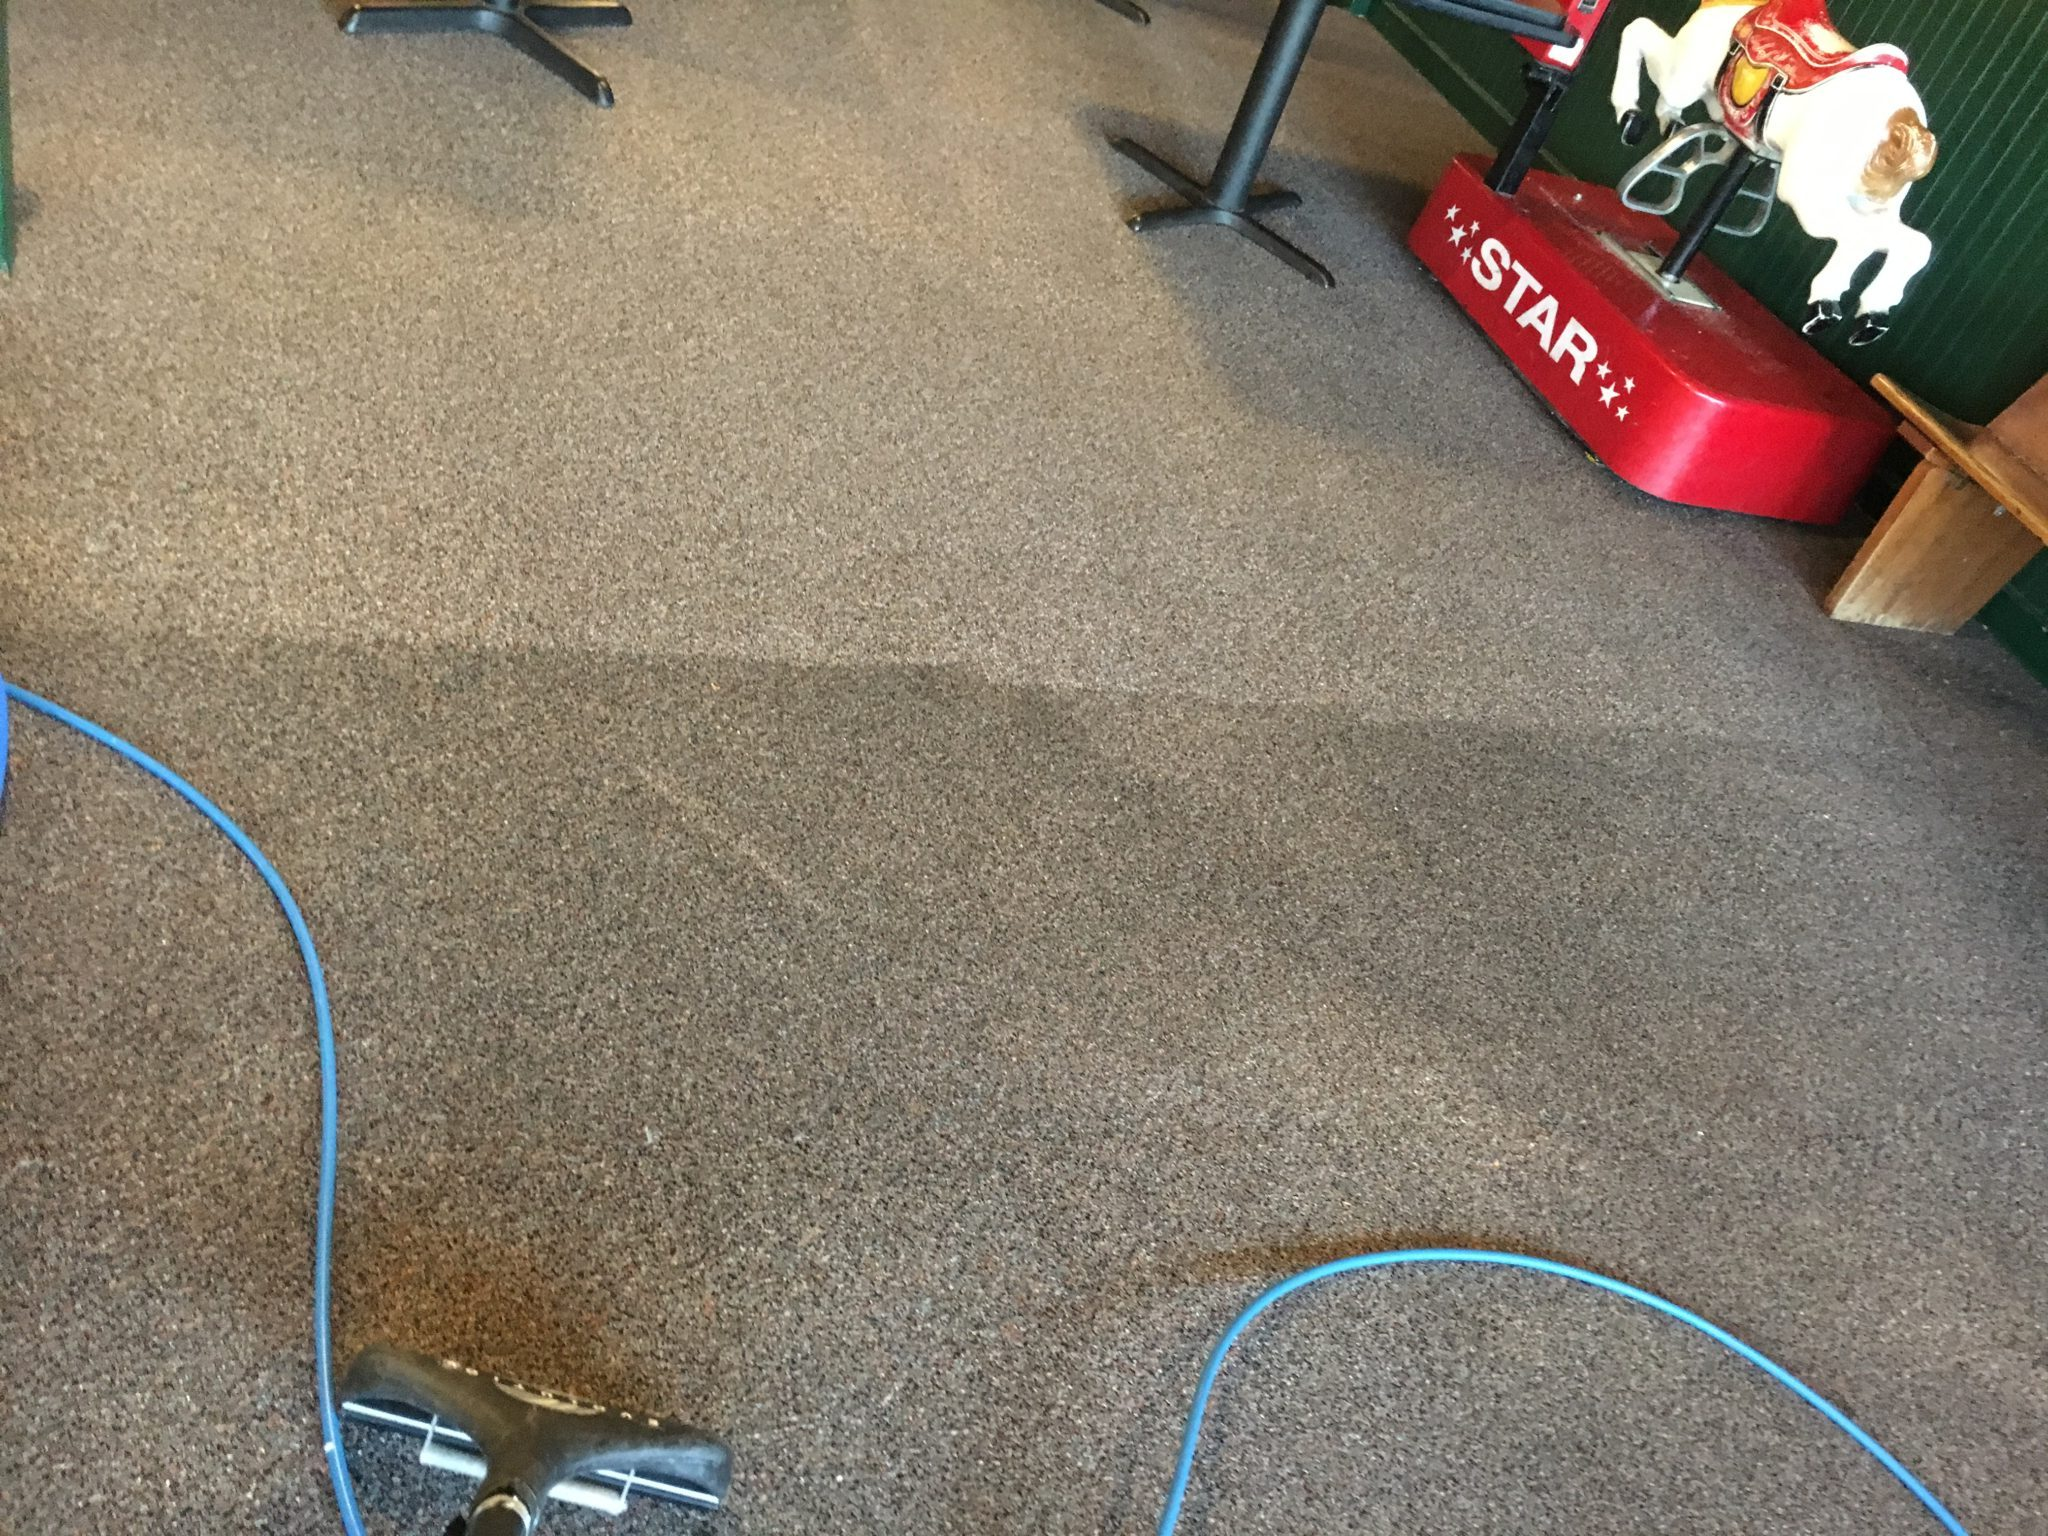 Cleaning Methods for Commercial Carpets